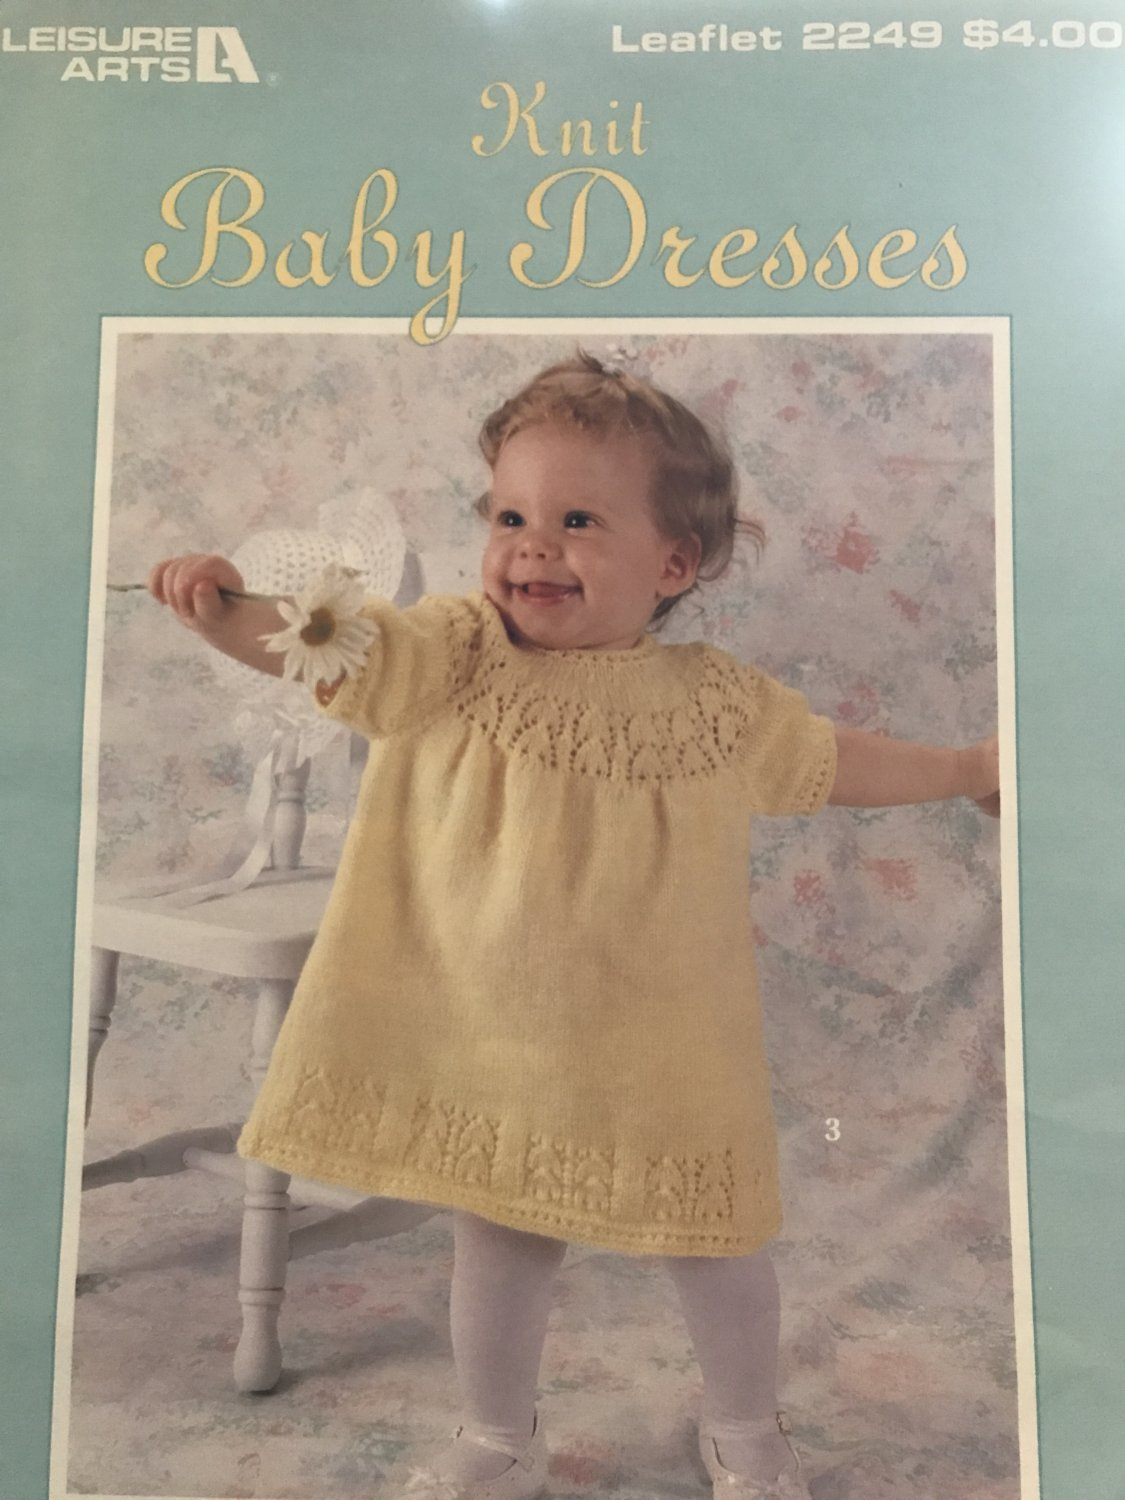 Baby Dresses Knitting Pattern Leisure Arts Leaflet 2249 Four designs by C Strohmeyer